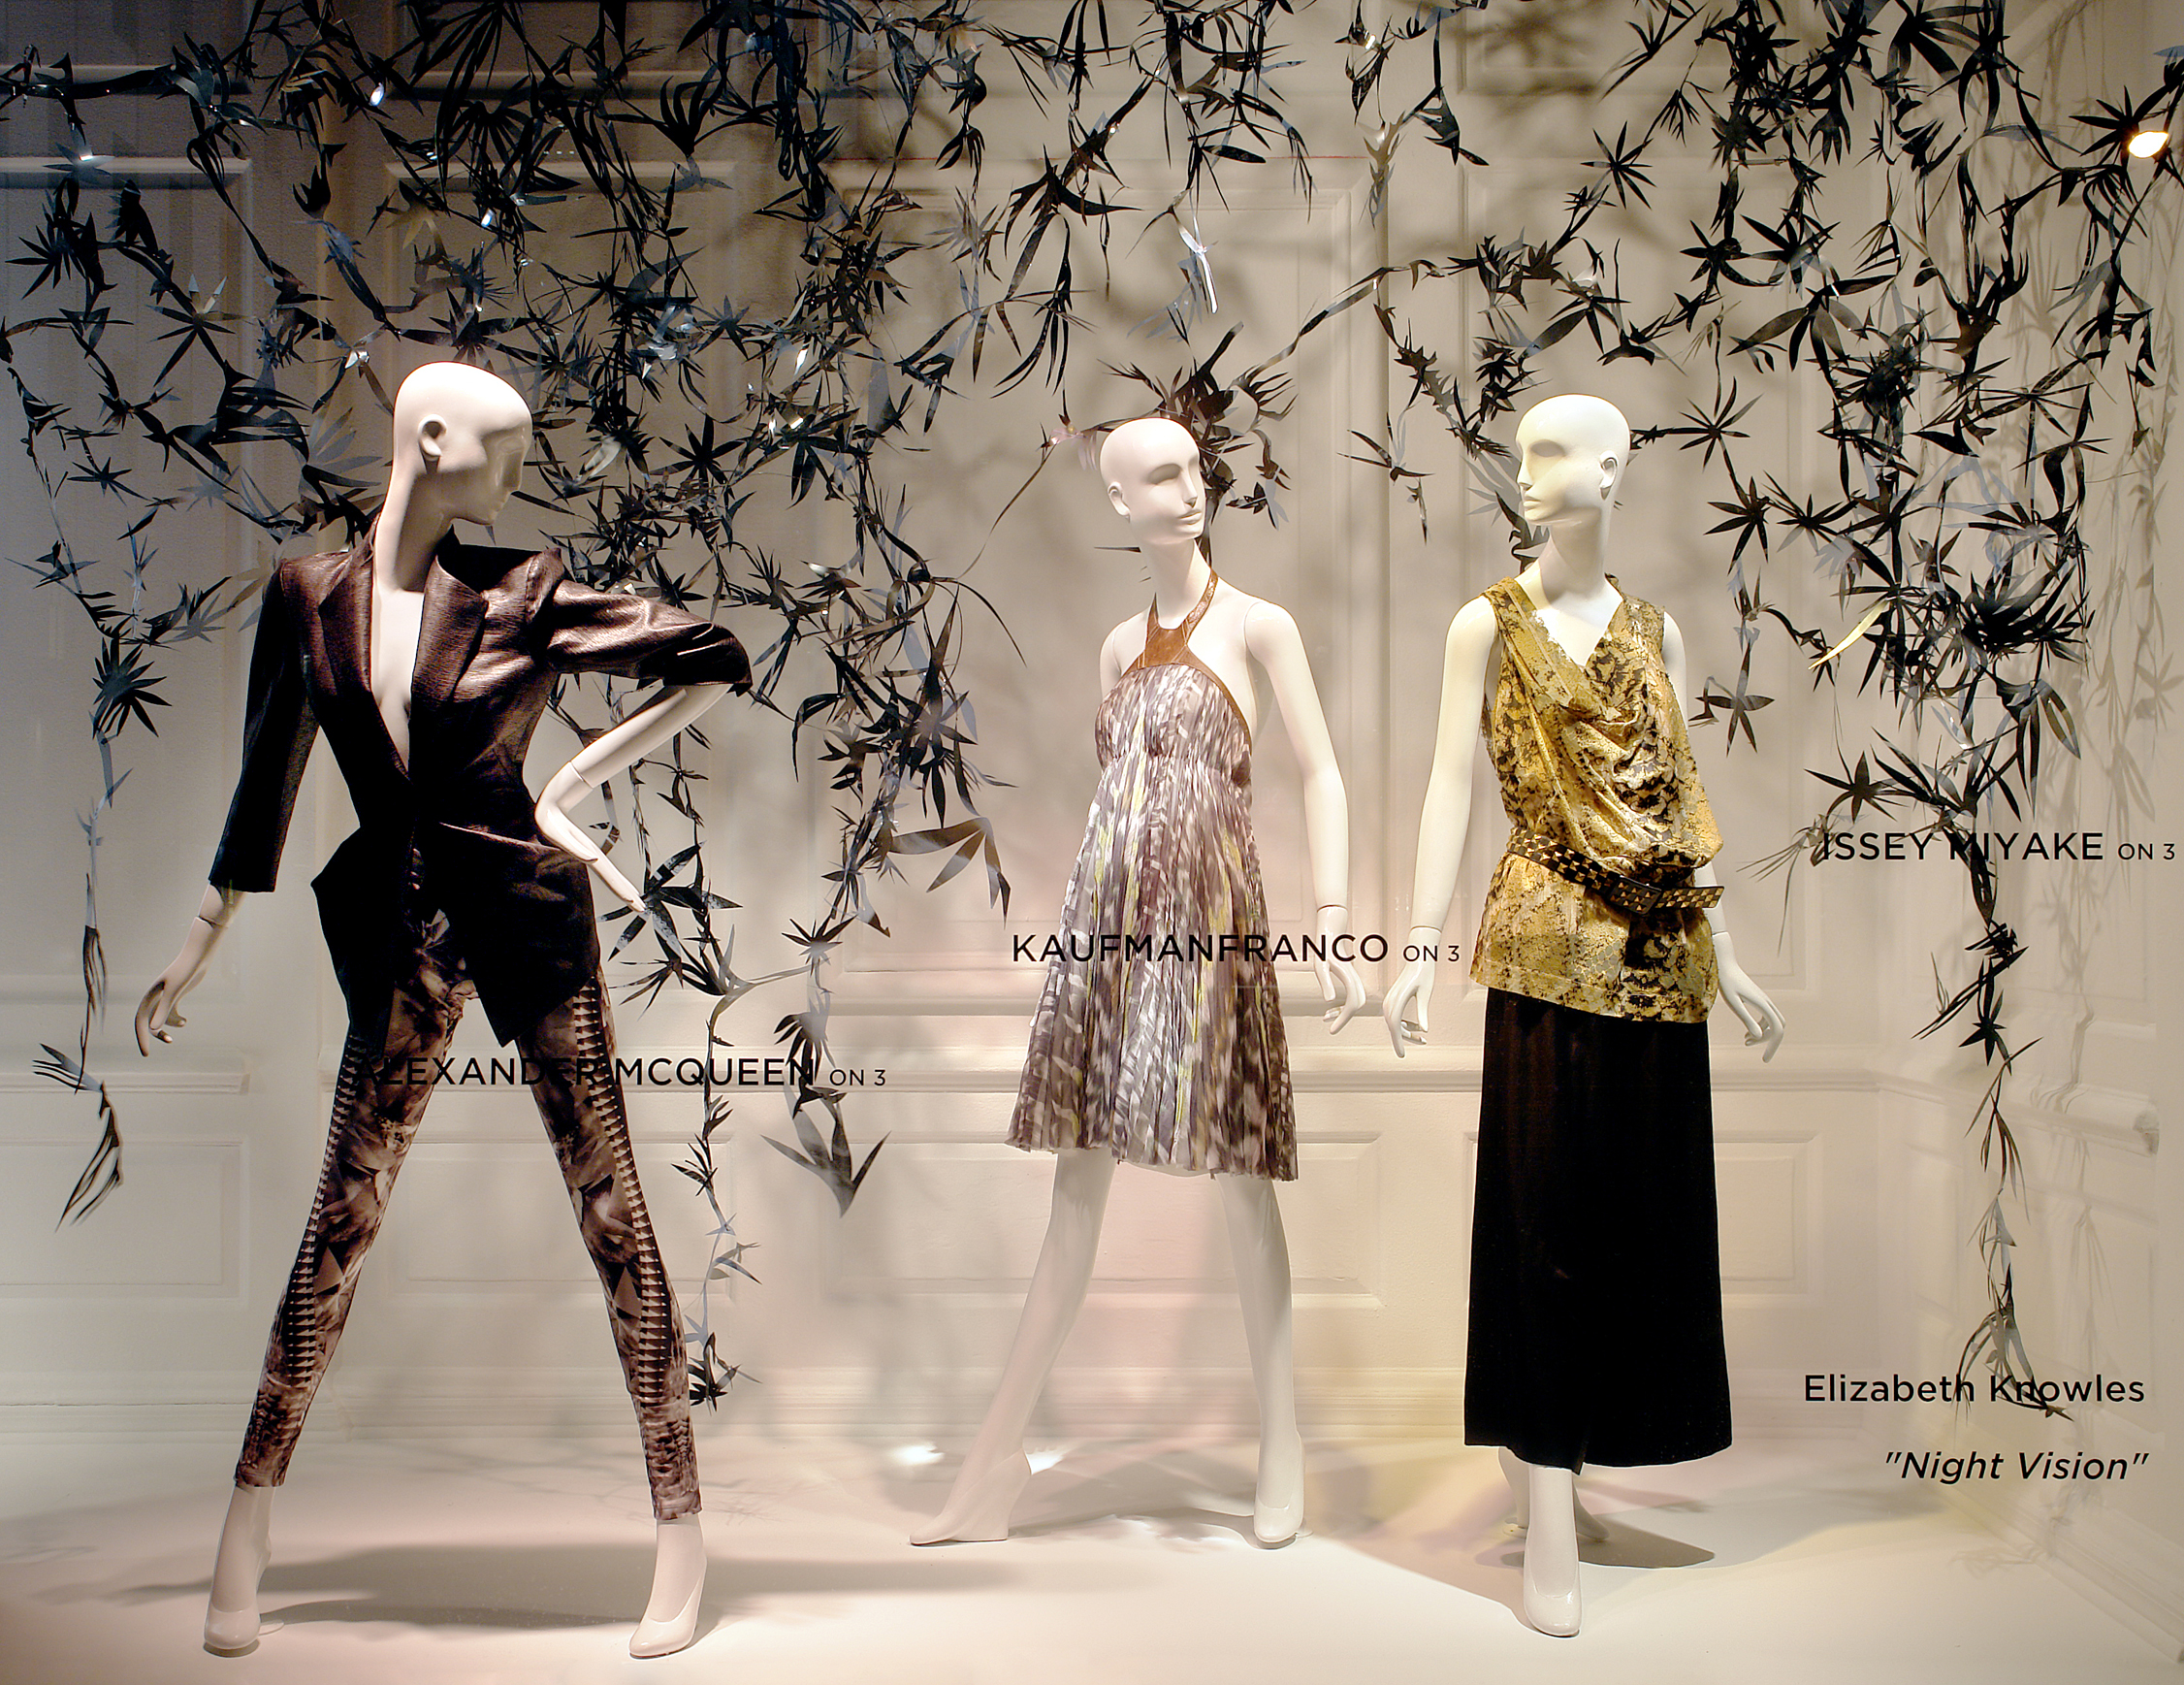 Saks Fifth Avenue - I created art installations in the windows for Saks' Fifth Avenue flagship store—featuring the work of designers Donna Karan, Alexander McQueen, Moschino and Issey Miyake.